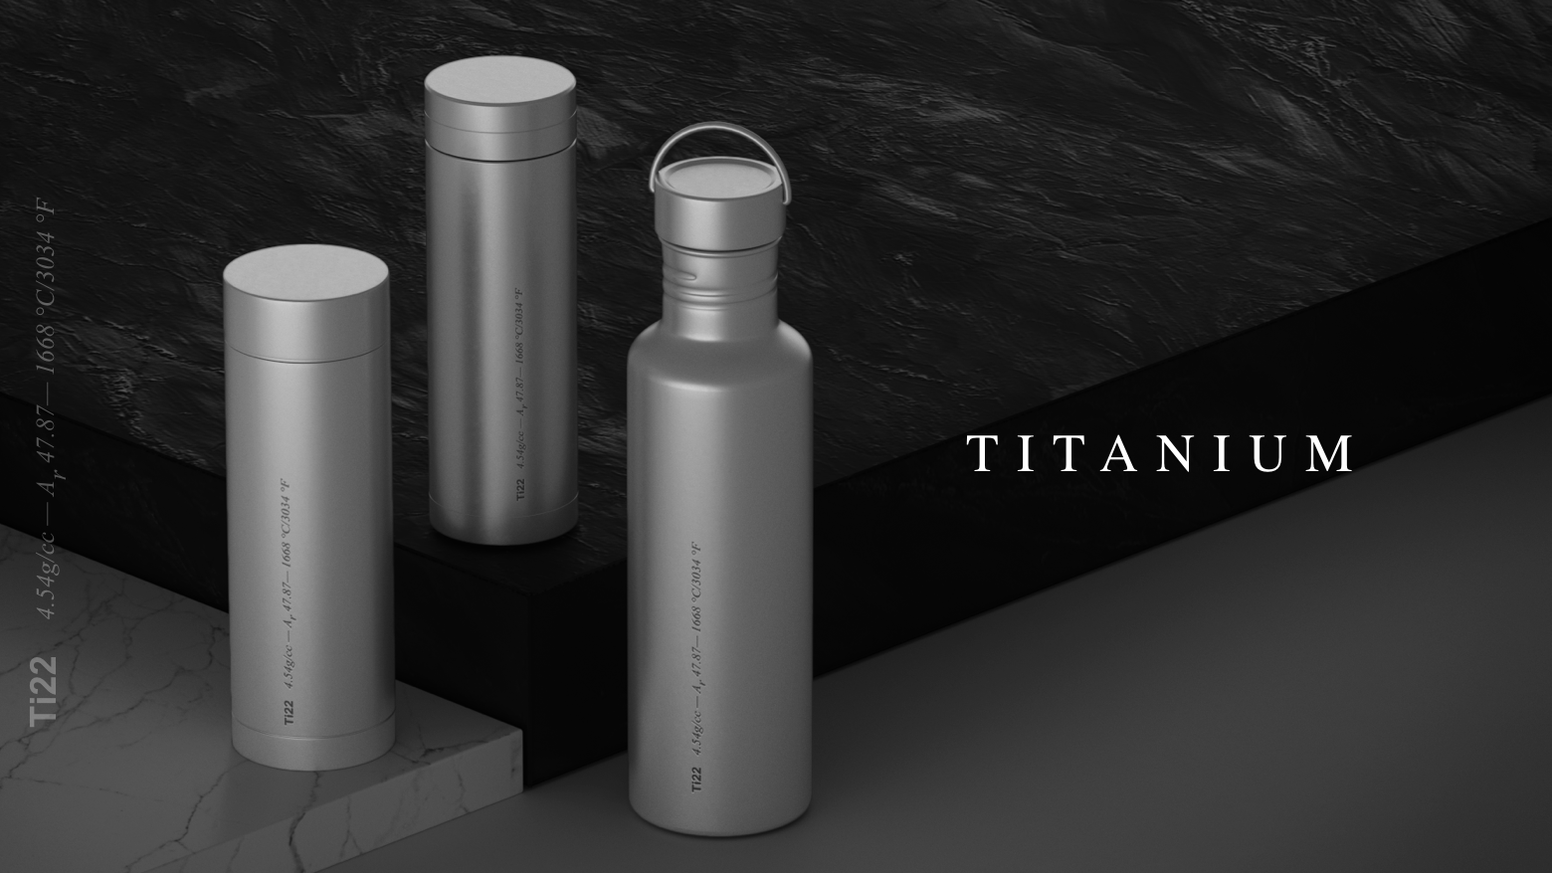 Anti-Bacterial, Anti-Corrosion, Anti-Leak. Made with medical implant grade pure titanium. Therma™ is more than just a luxurious flask.